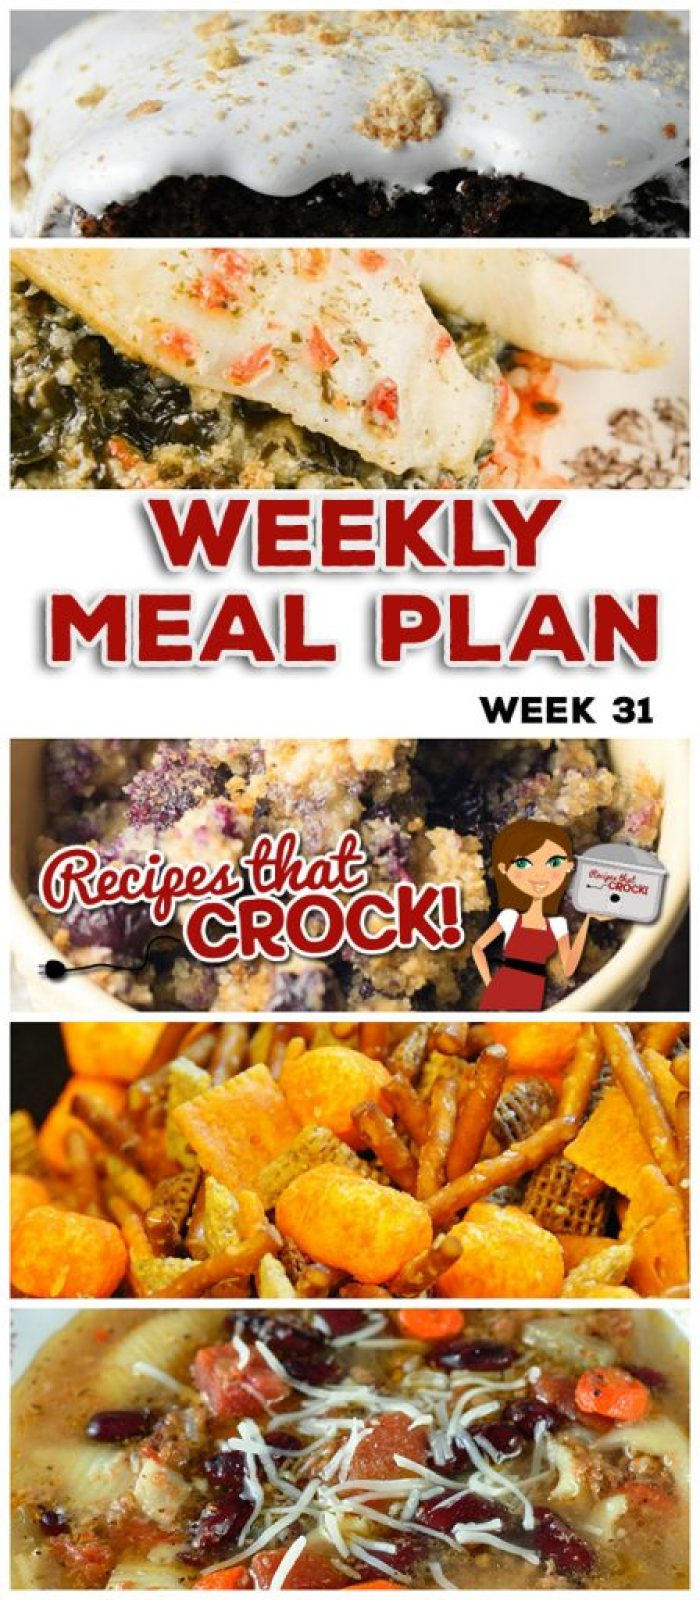 This week's weekly menu features Crock Pot Buffalo Ranch Chicken Nachos, Crock Pot Tomato Rice with Stuffed Tilapia, Crock Pot Minestrone Soup, Crock Pot Cheeseburger Pie, Creamy Crock Pot Dijon Mushroom Pork, Crock Pot Blueberry Breakfast Casserole, Crock Pot Brownie S'mores and Crock Pot Cheesy Party Mix.